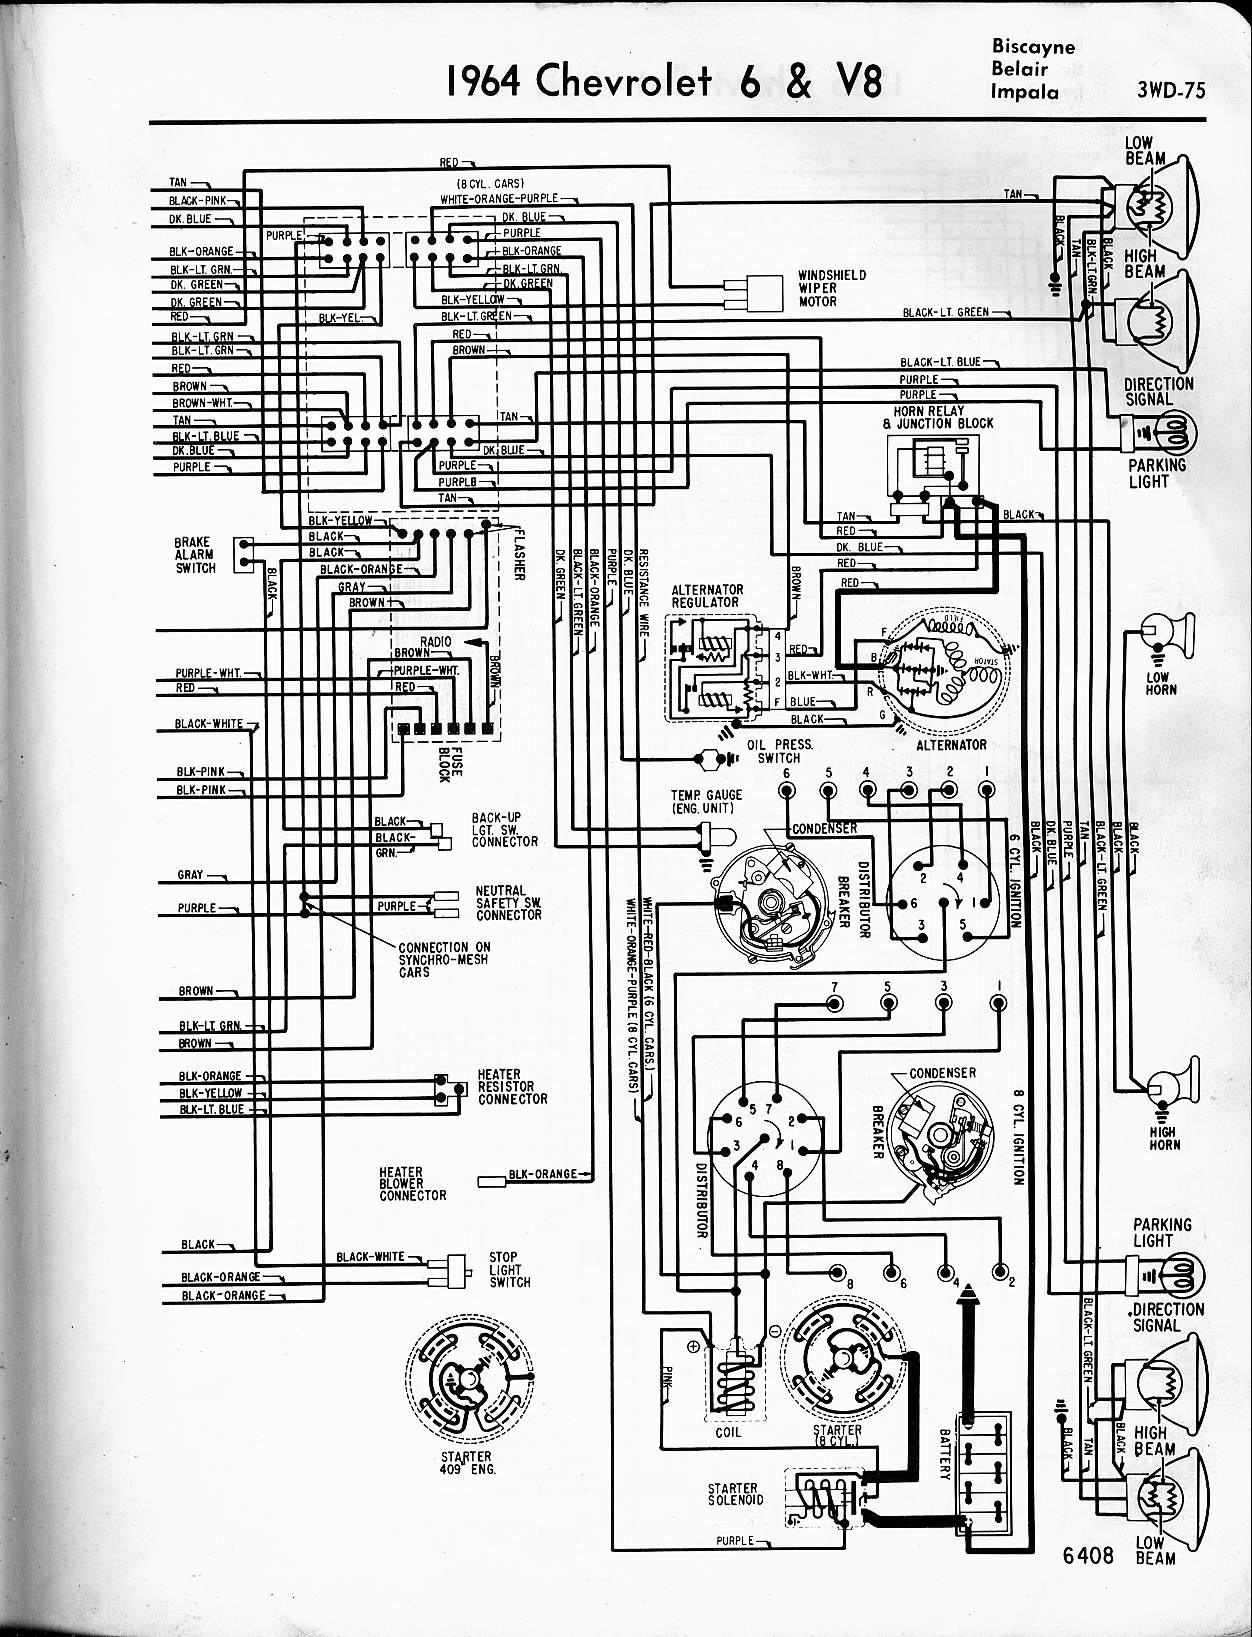 64 impala wiring diagram experts of wiring diagram u2022 rh evilcloud co uk